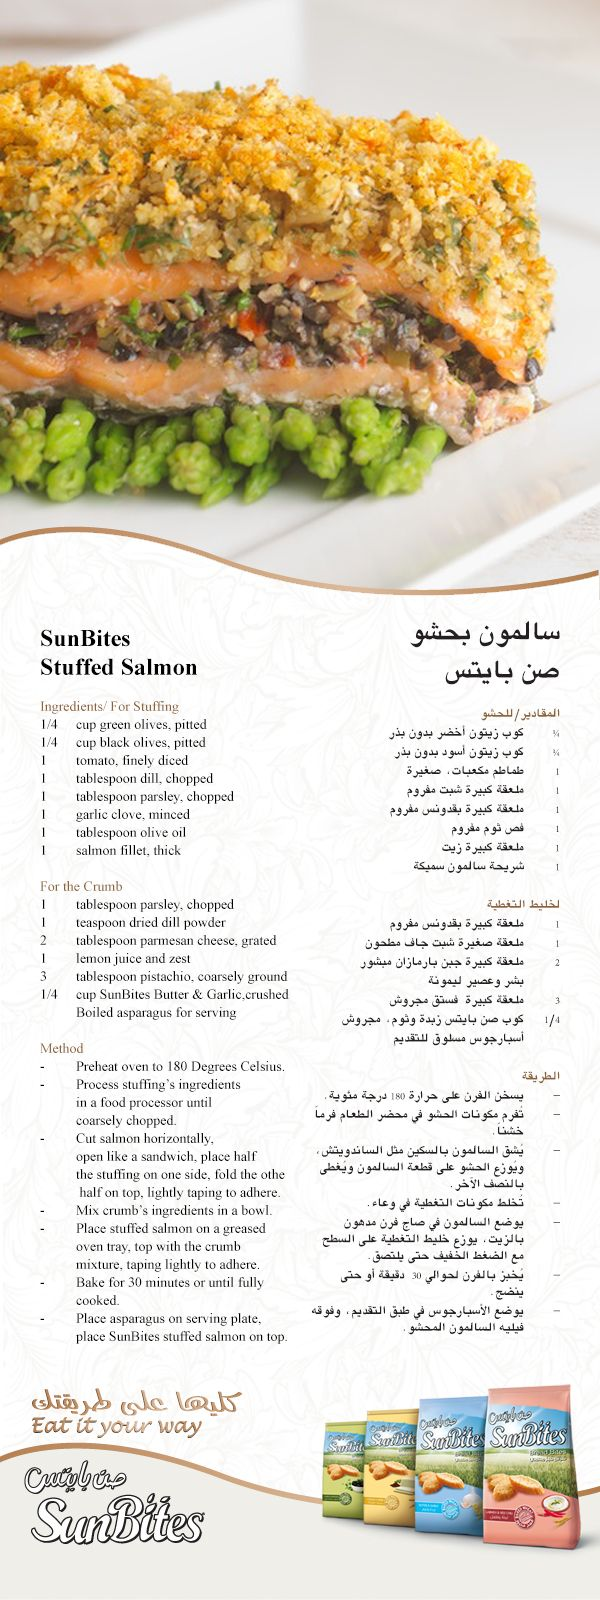 Sunbites Arabia Recipes Cooking Recipes Cooking